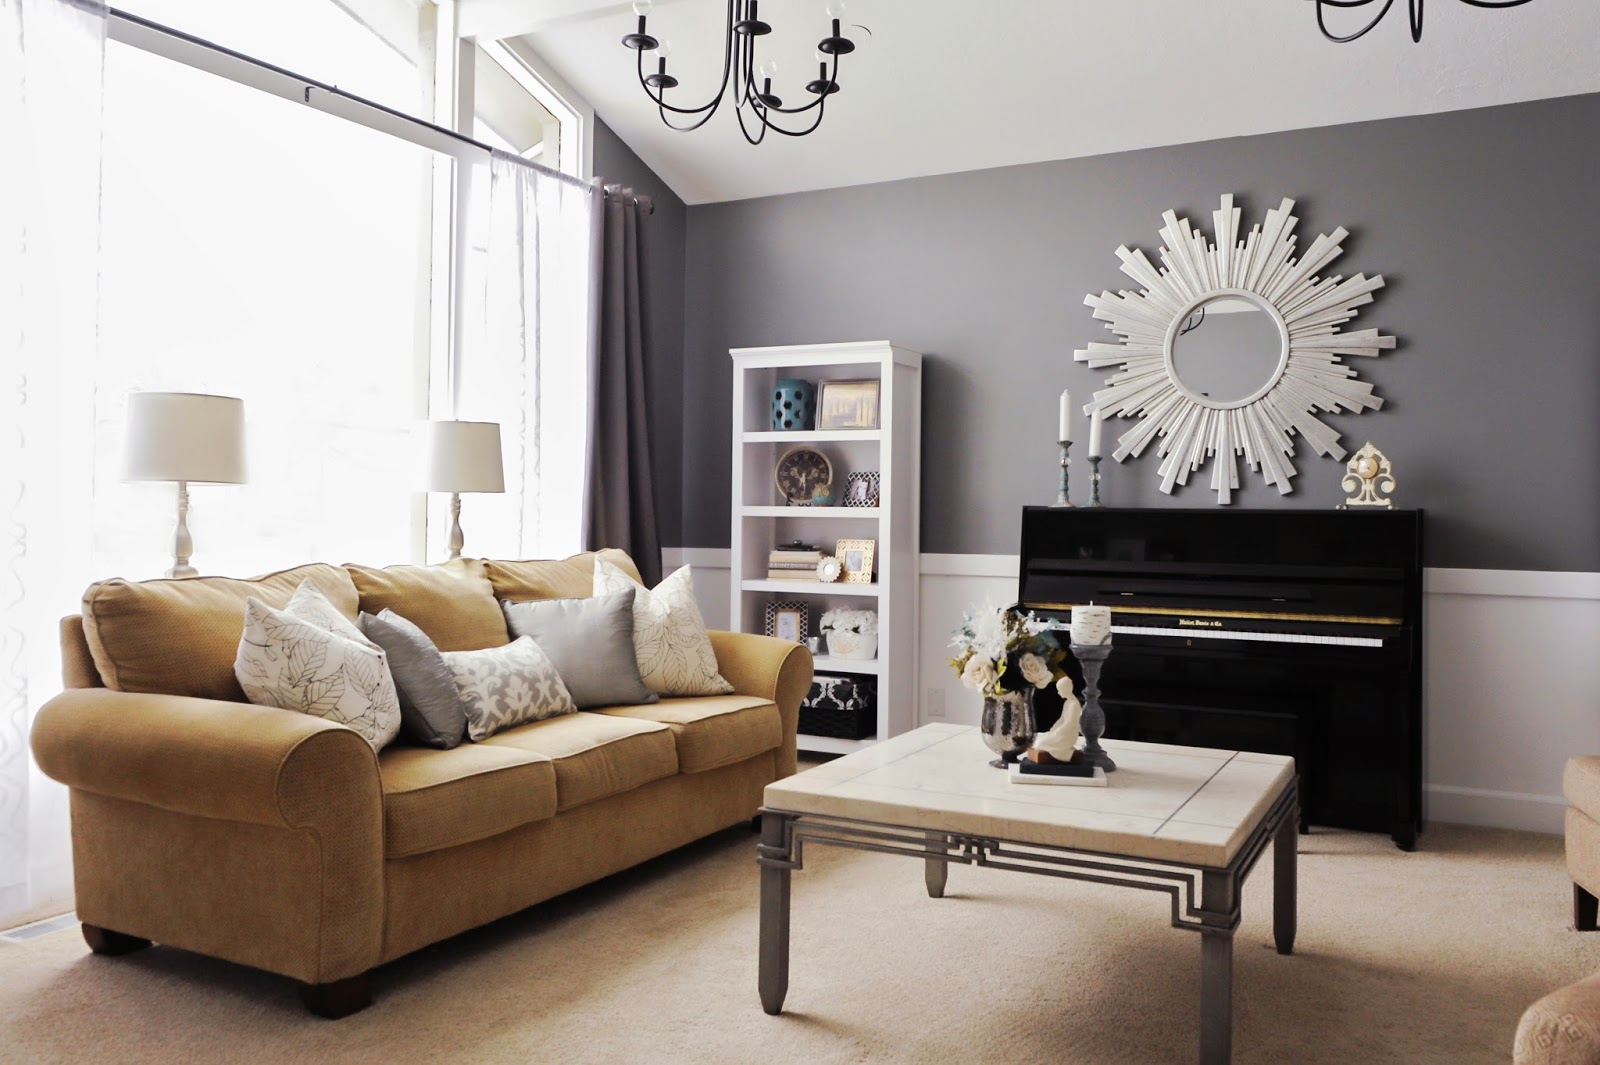 Studio 7 Interior Design: Client Reveal:Transitional Chic Formal Living Room